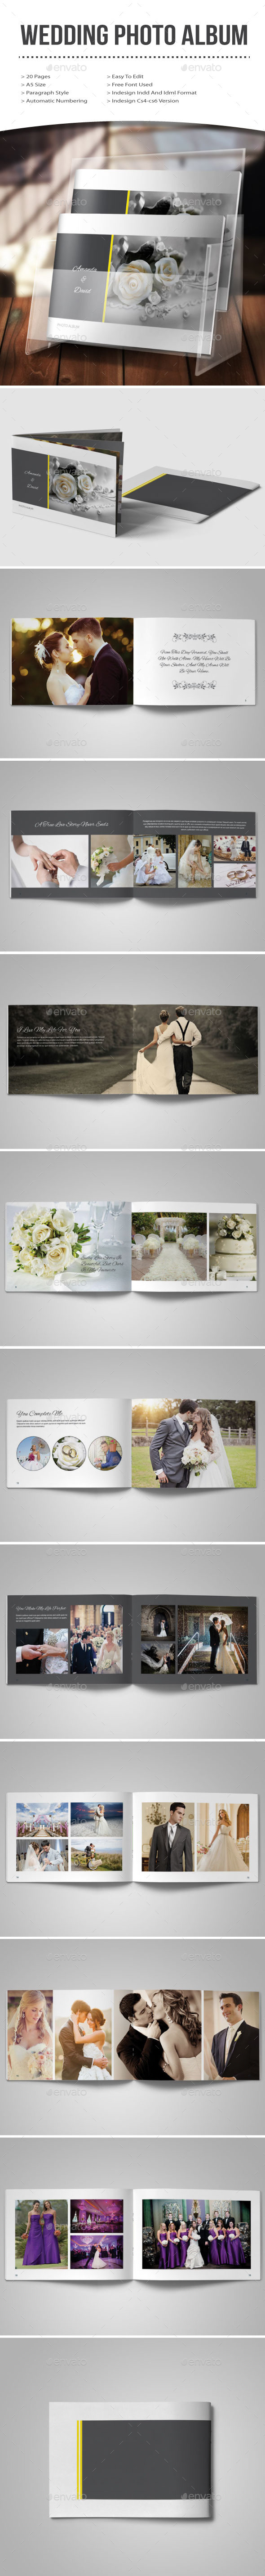 GraphicRiver Wedding Photo Album 11123039